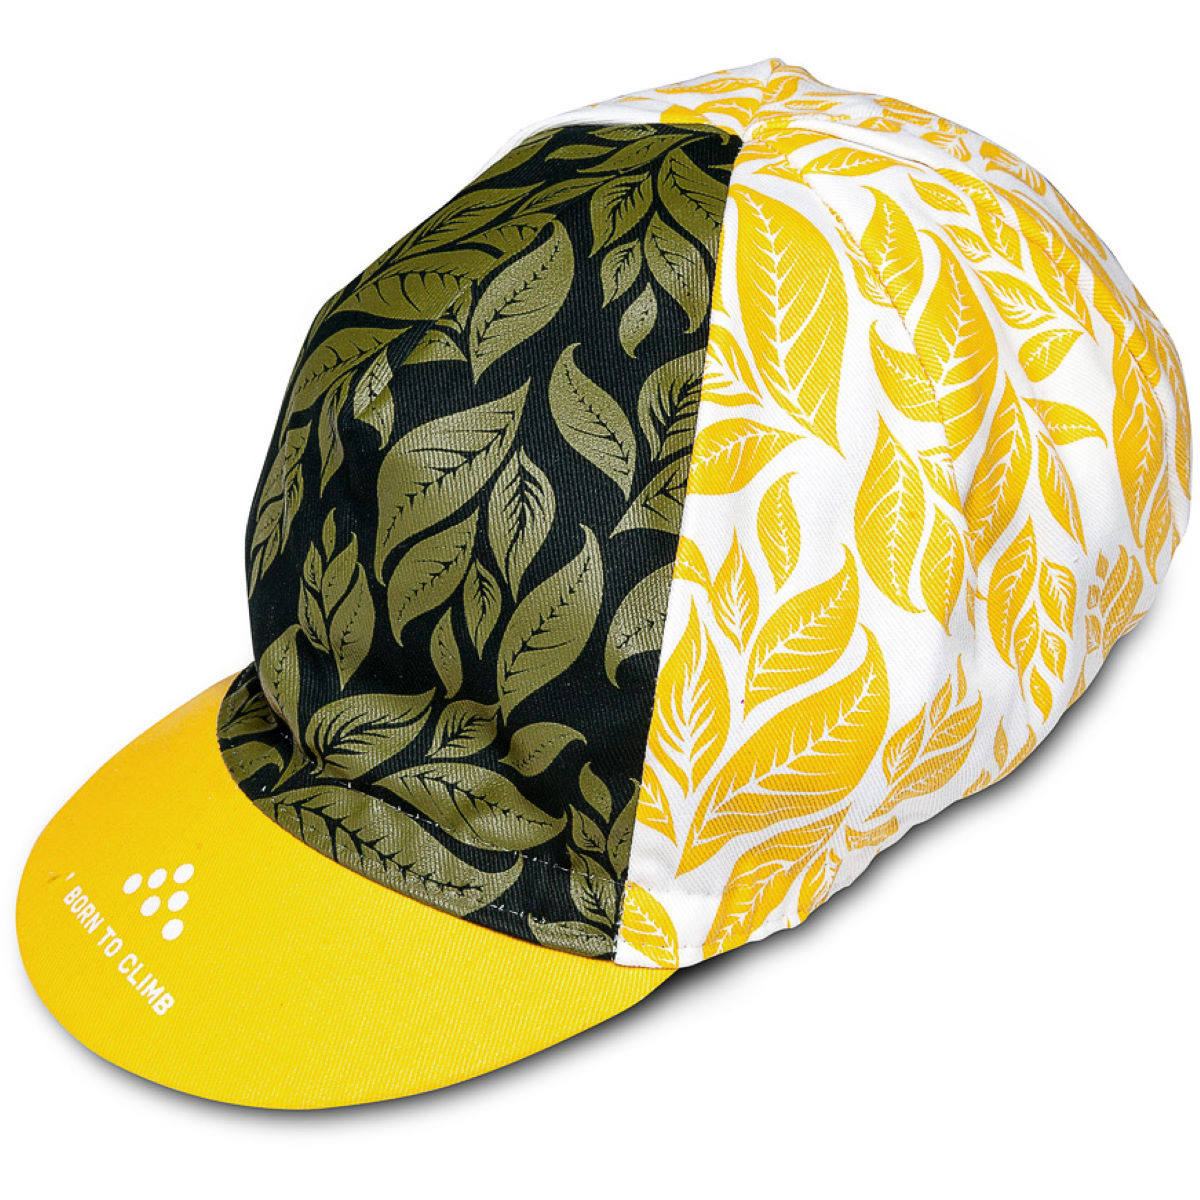 Casquette Isadore Angliru Climbers - Taille unique Green/Yellow